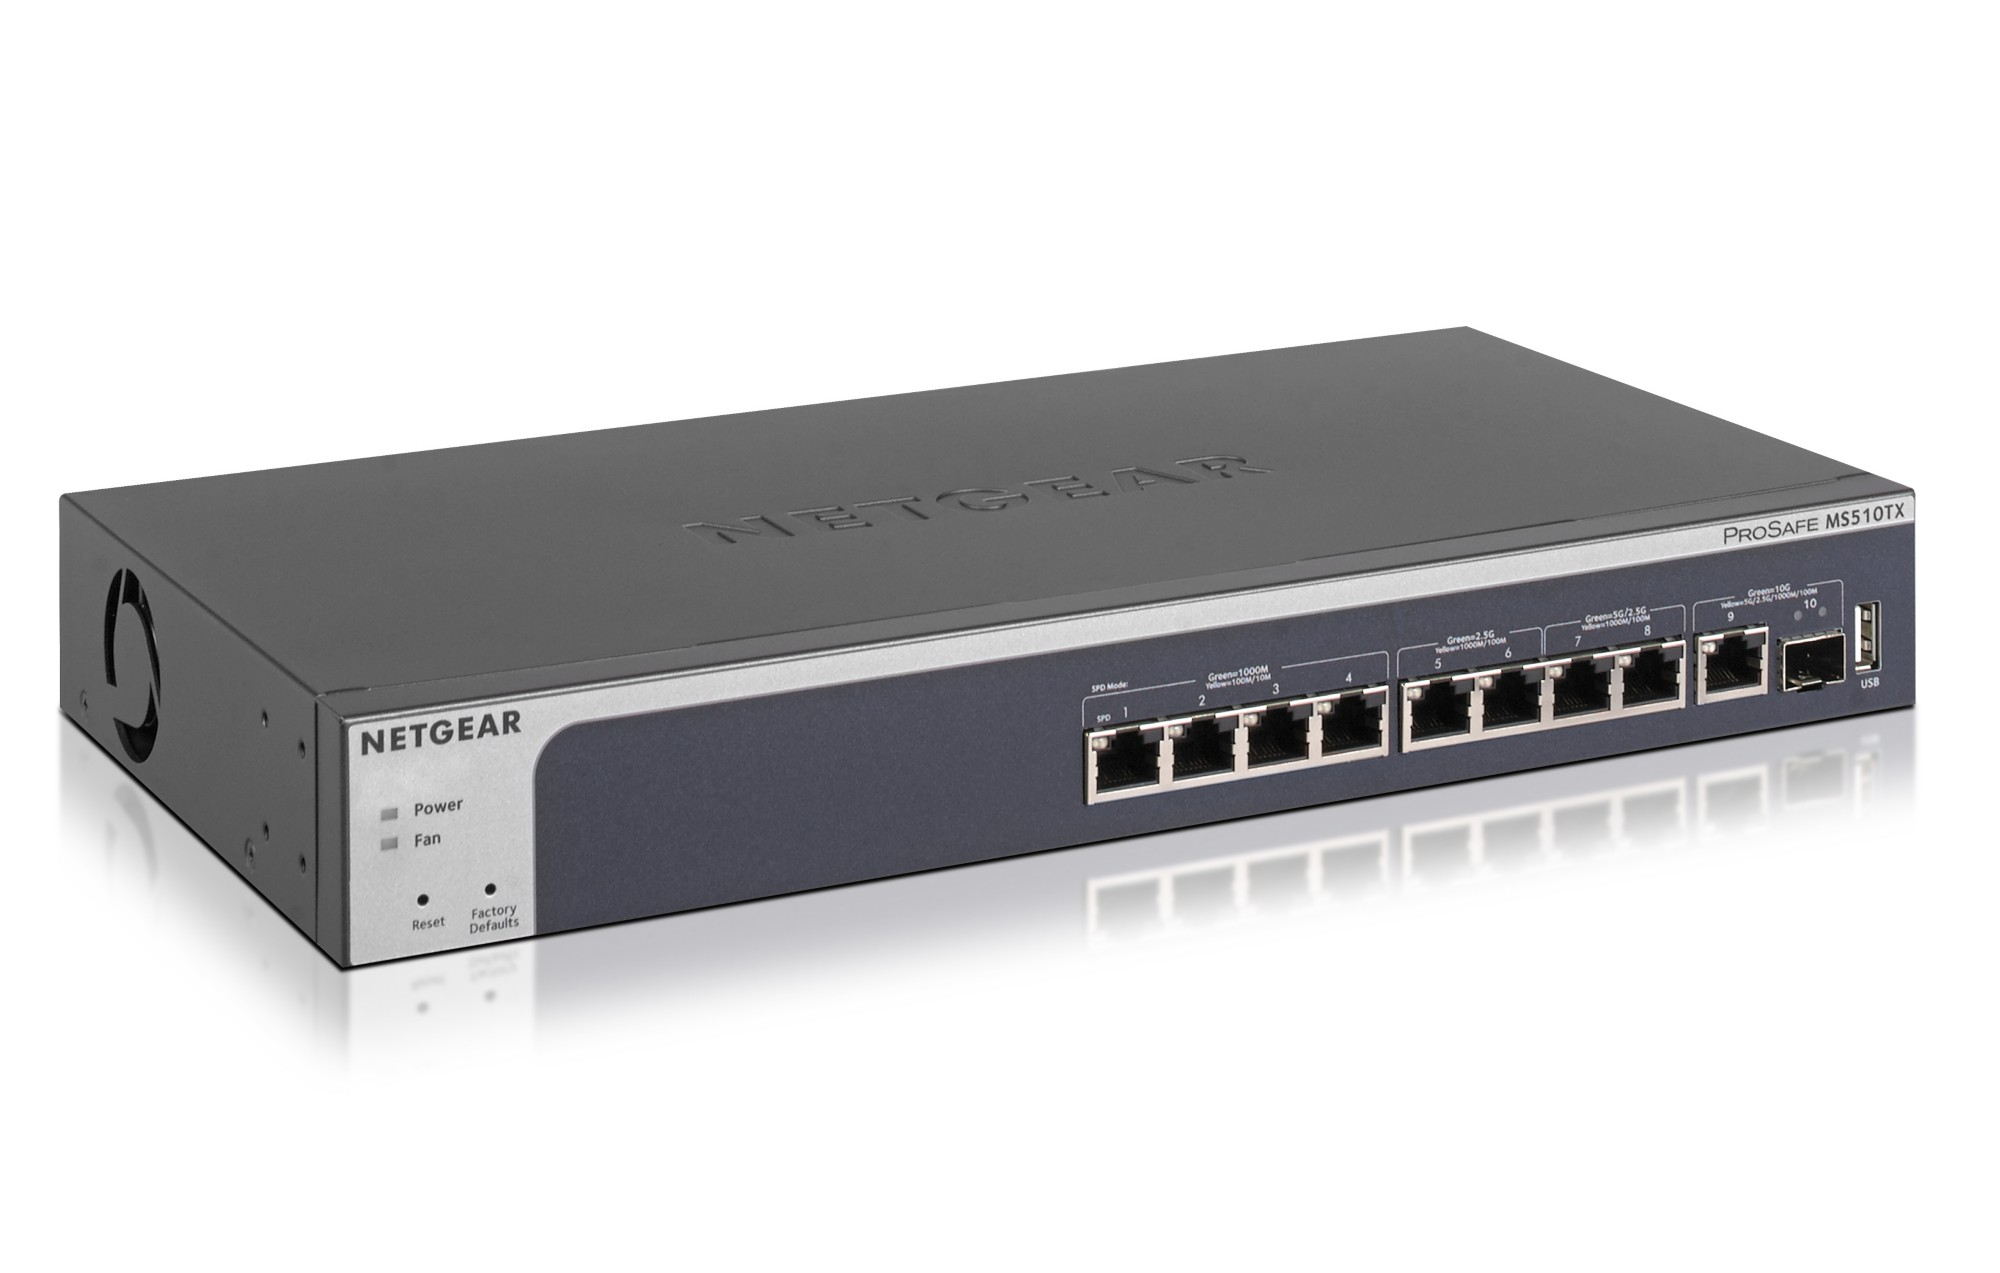 NETGEAR MS510TX MANAGED L2/L3/L4 GIGABIT ETHERNET GREY